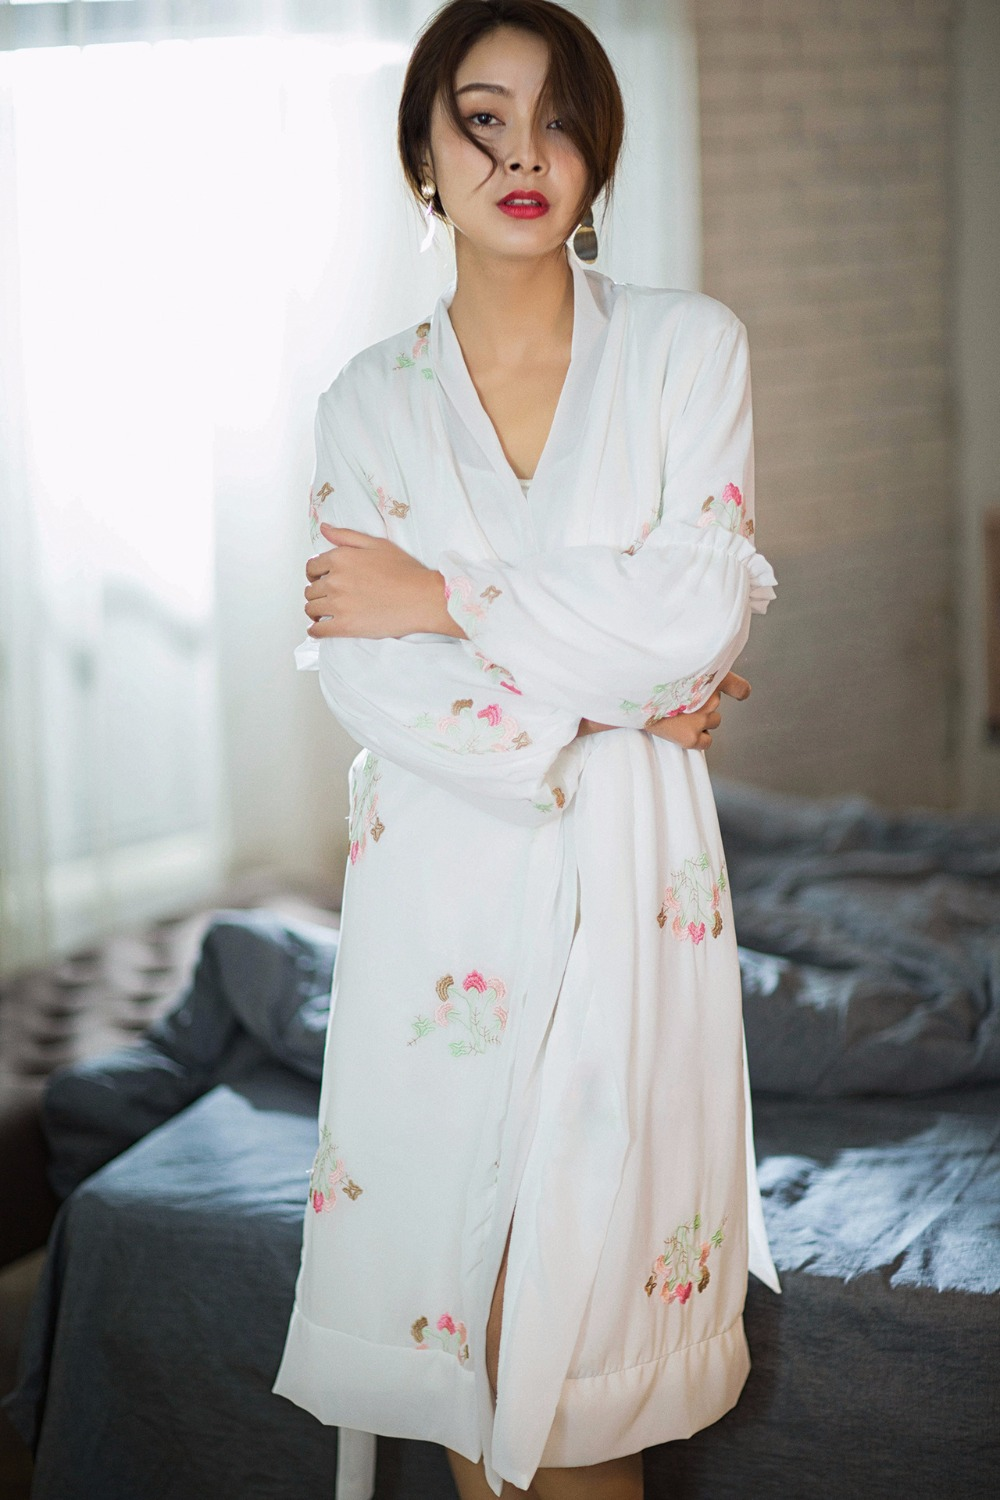 Silk Wedding Robes for Women 2018 Spring Autumn Bathrobes Lace Kimono Robe Sexy Sleepwear Nightie Nuisette